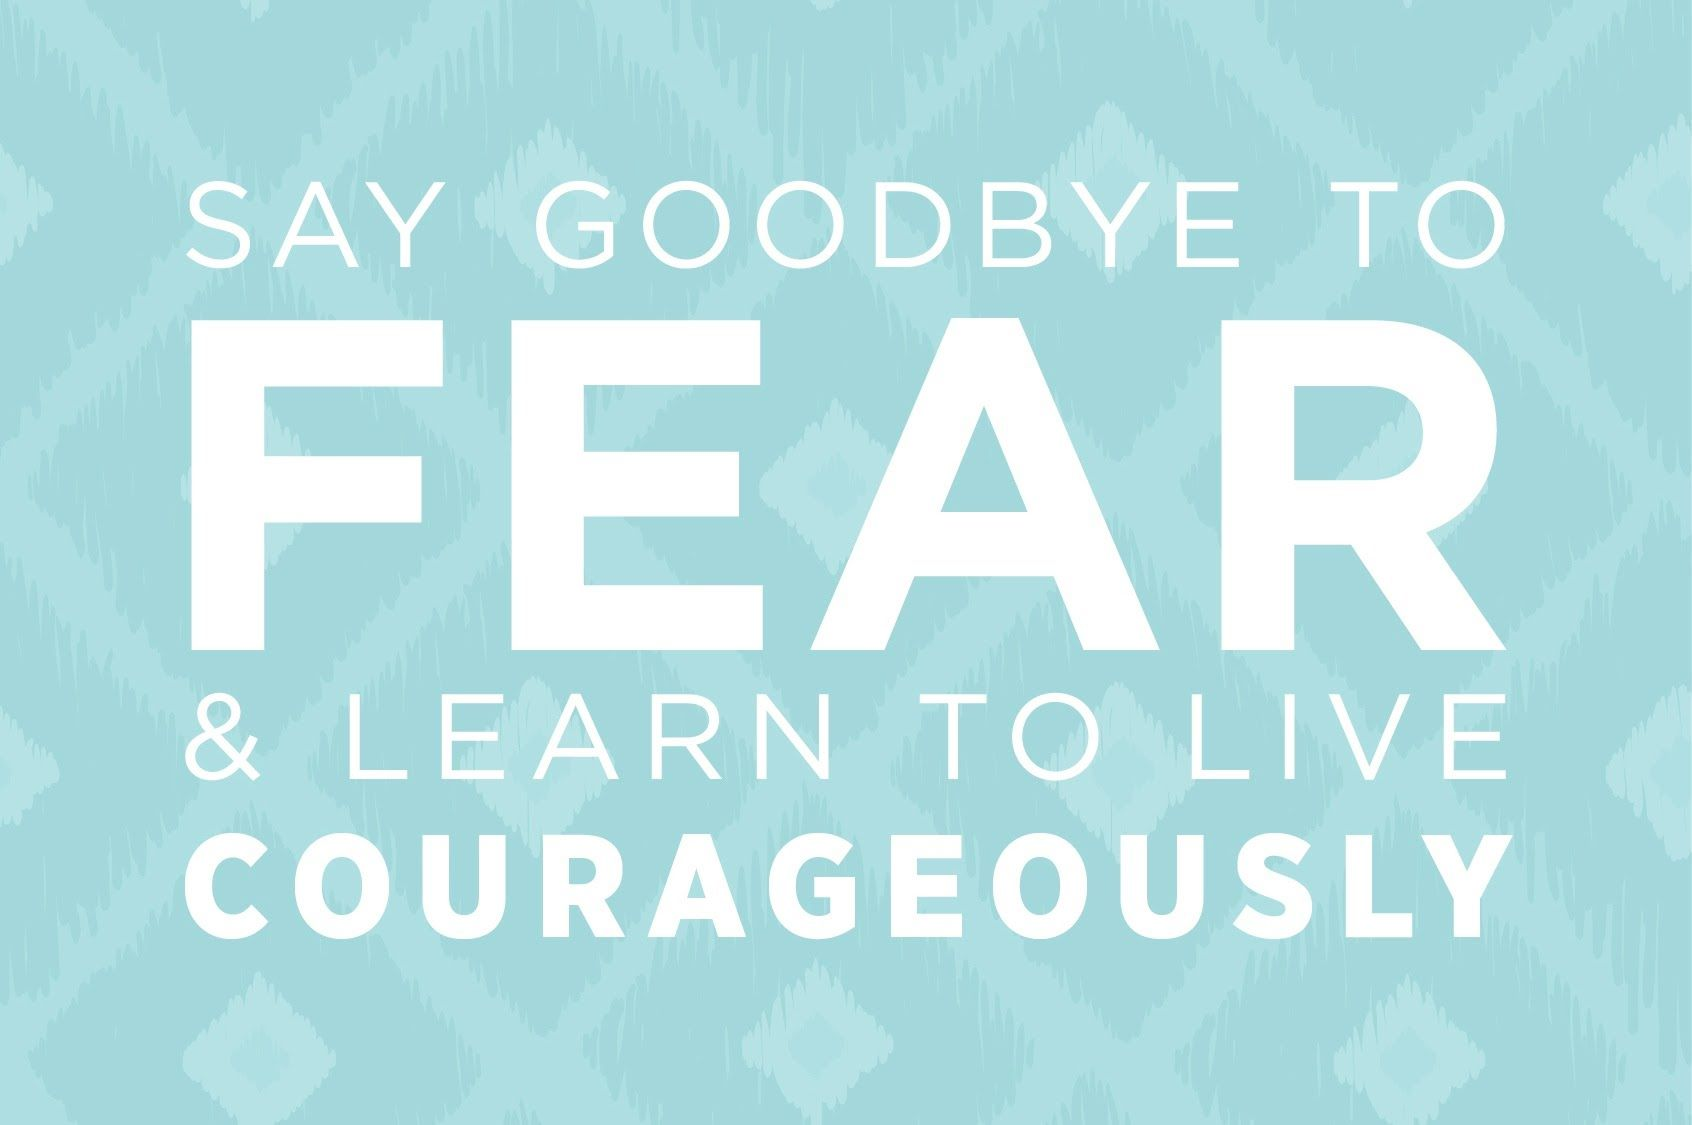 How do you cultivate courage joyce meyer books